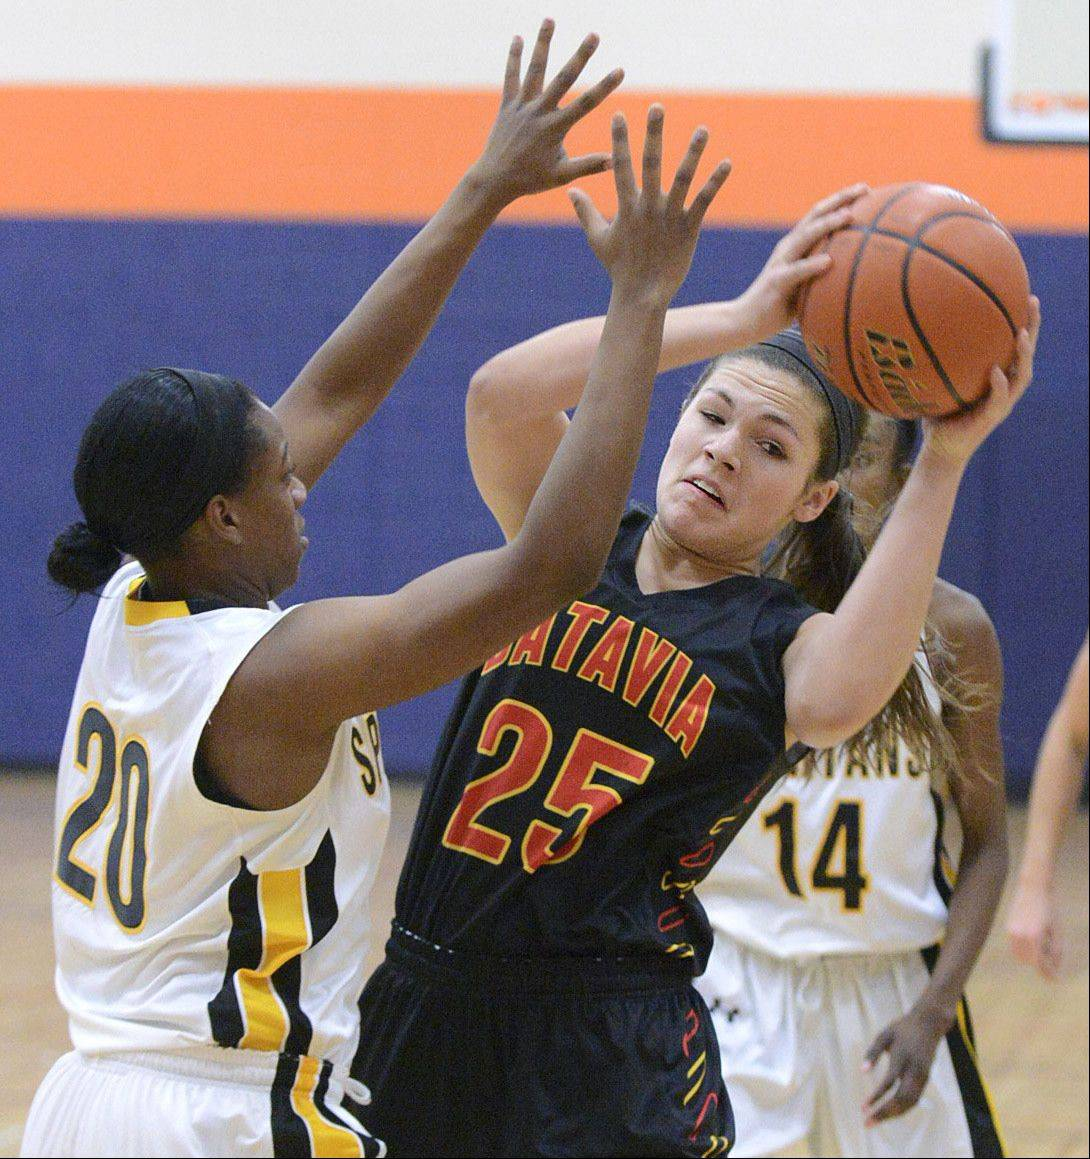 Images: Batavia vs. Marian Catholic girls basketball